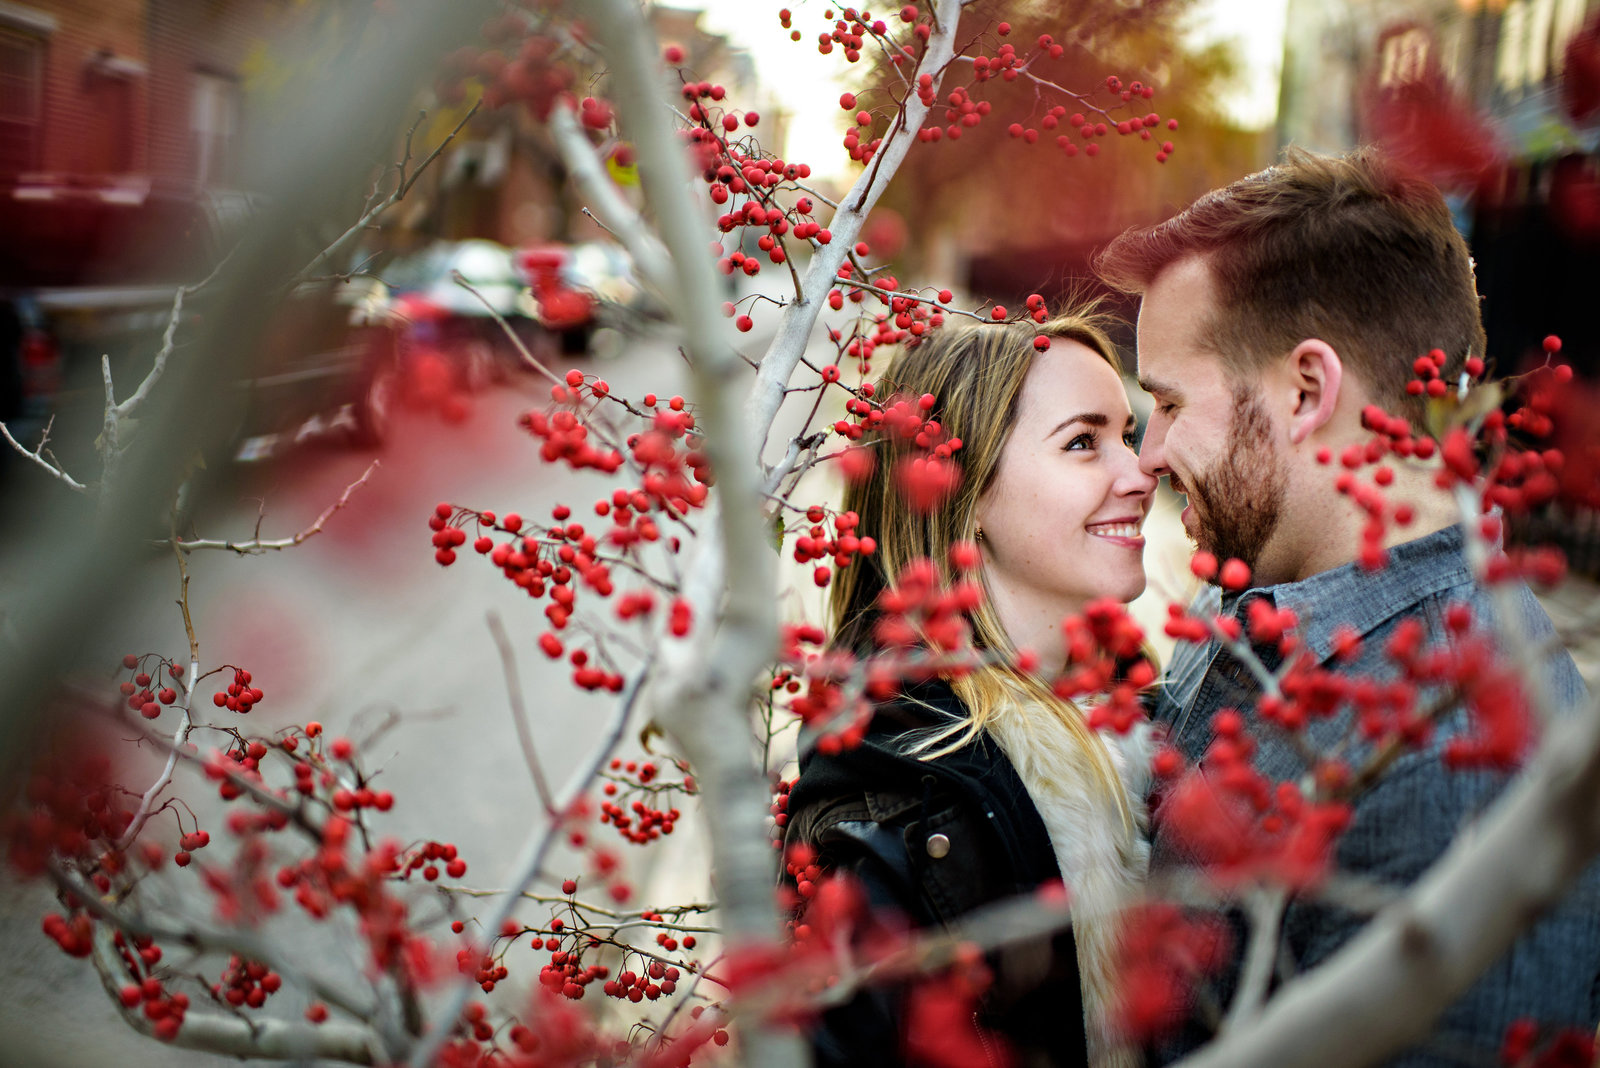 Philadelphia Engagement Photographer - Russ Hickman Photography - Creative Engagement Photographer - Engagement_Photographer_016